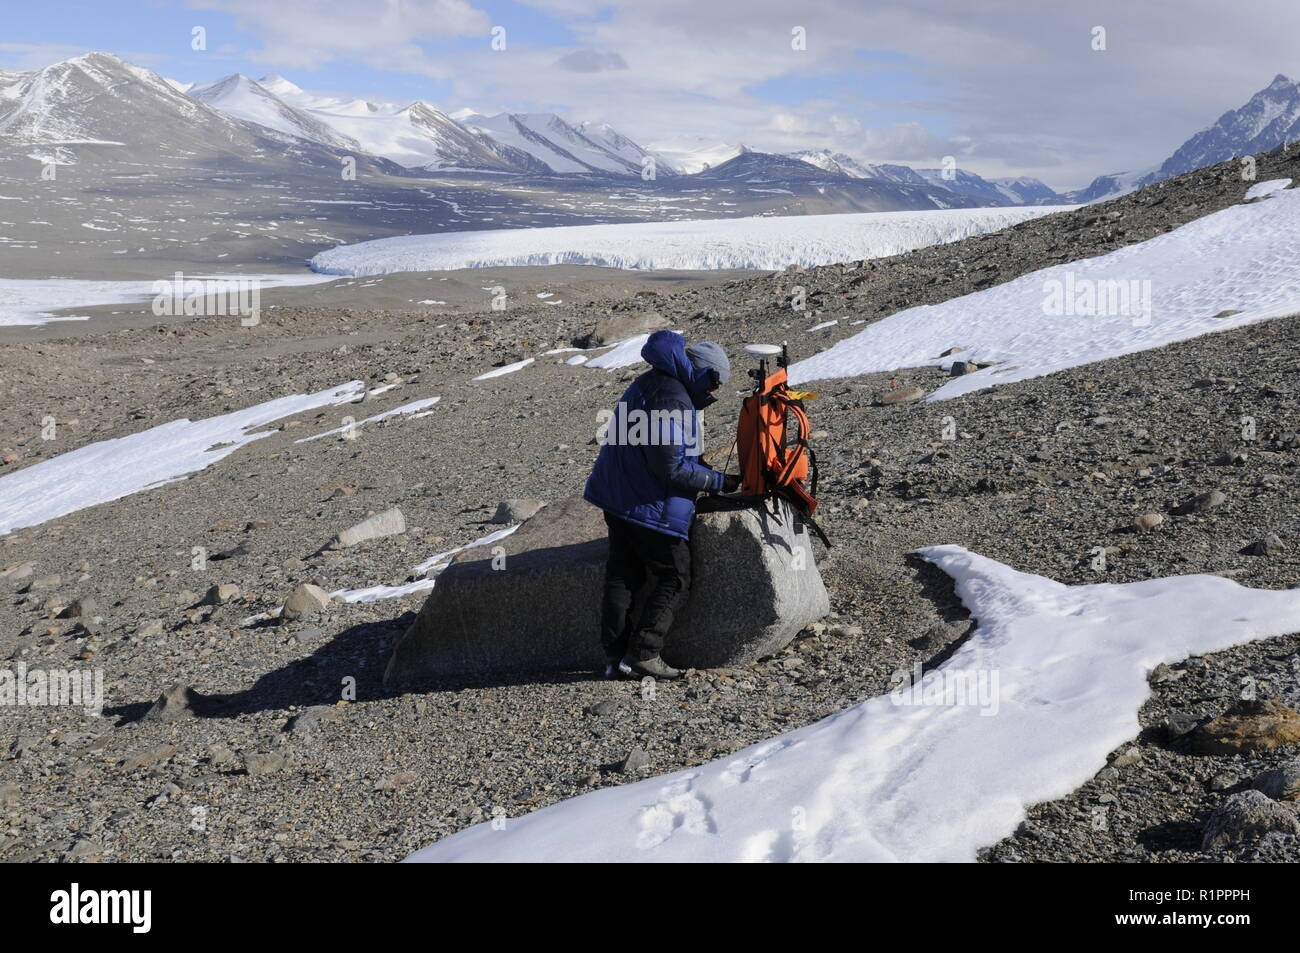 Scientist recording GPS data in Taylor Valley, McMurdo Dry Valleys, Antarctica, with Lake Fryxell and Canada Glacier in background - Stock Image